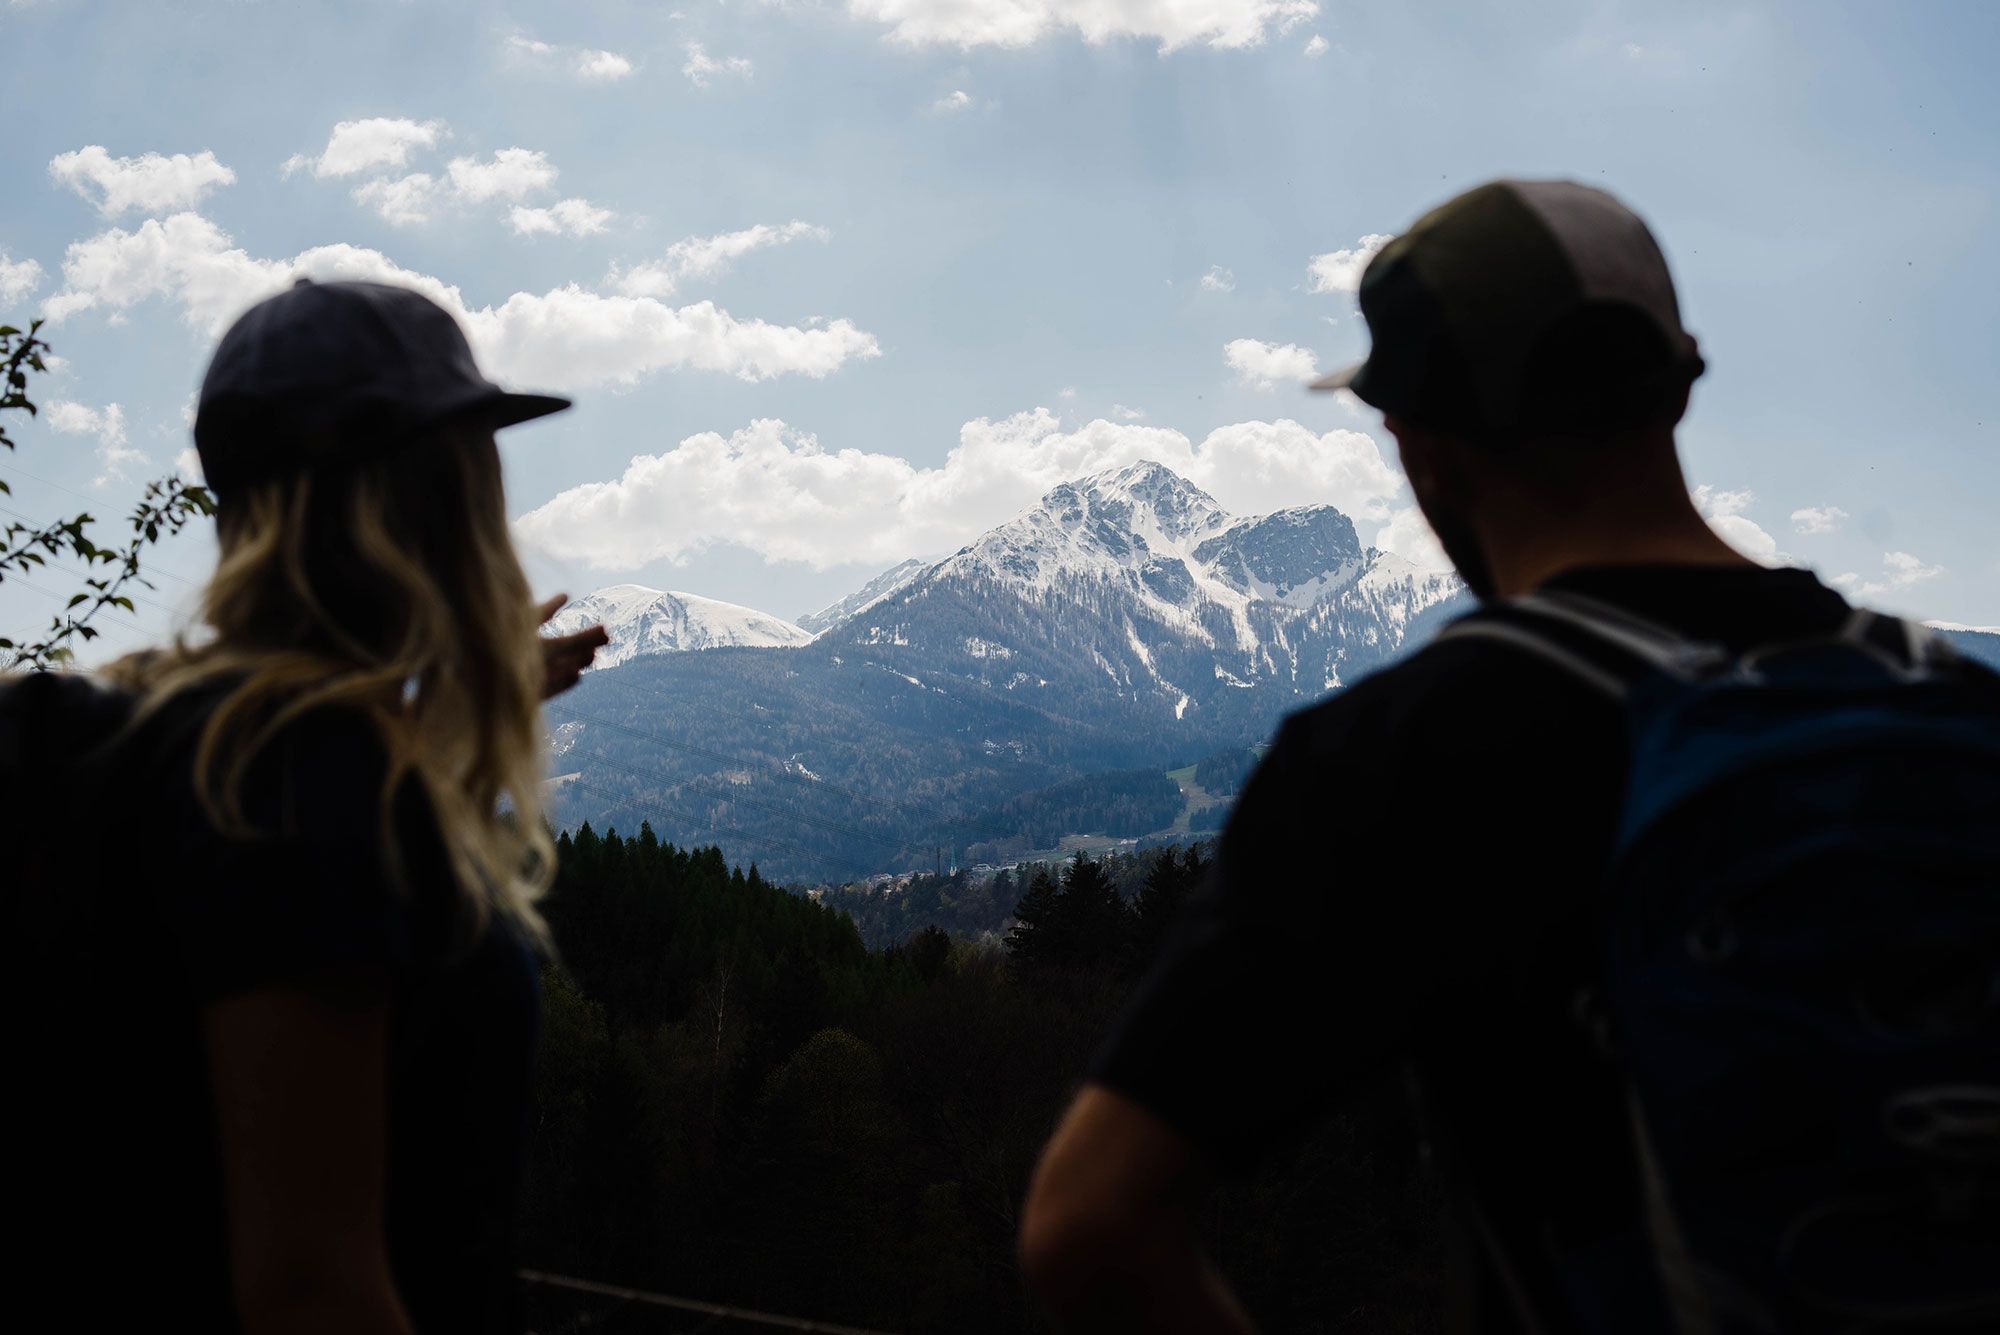 A man and woman look at a mountain range in Innsbruck, Austria